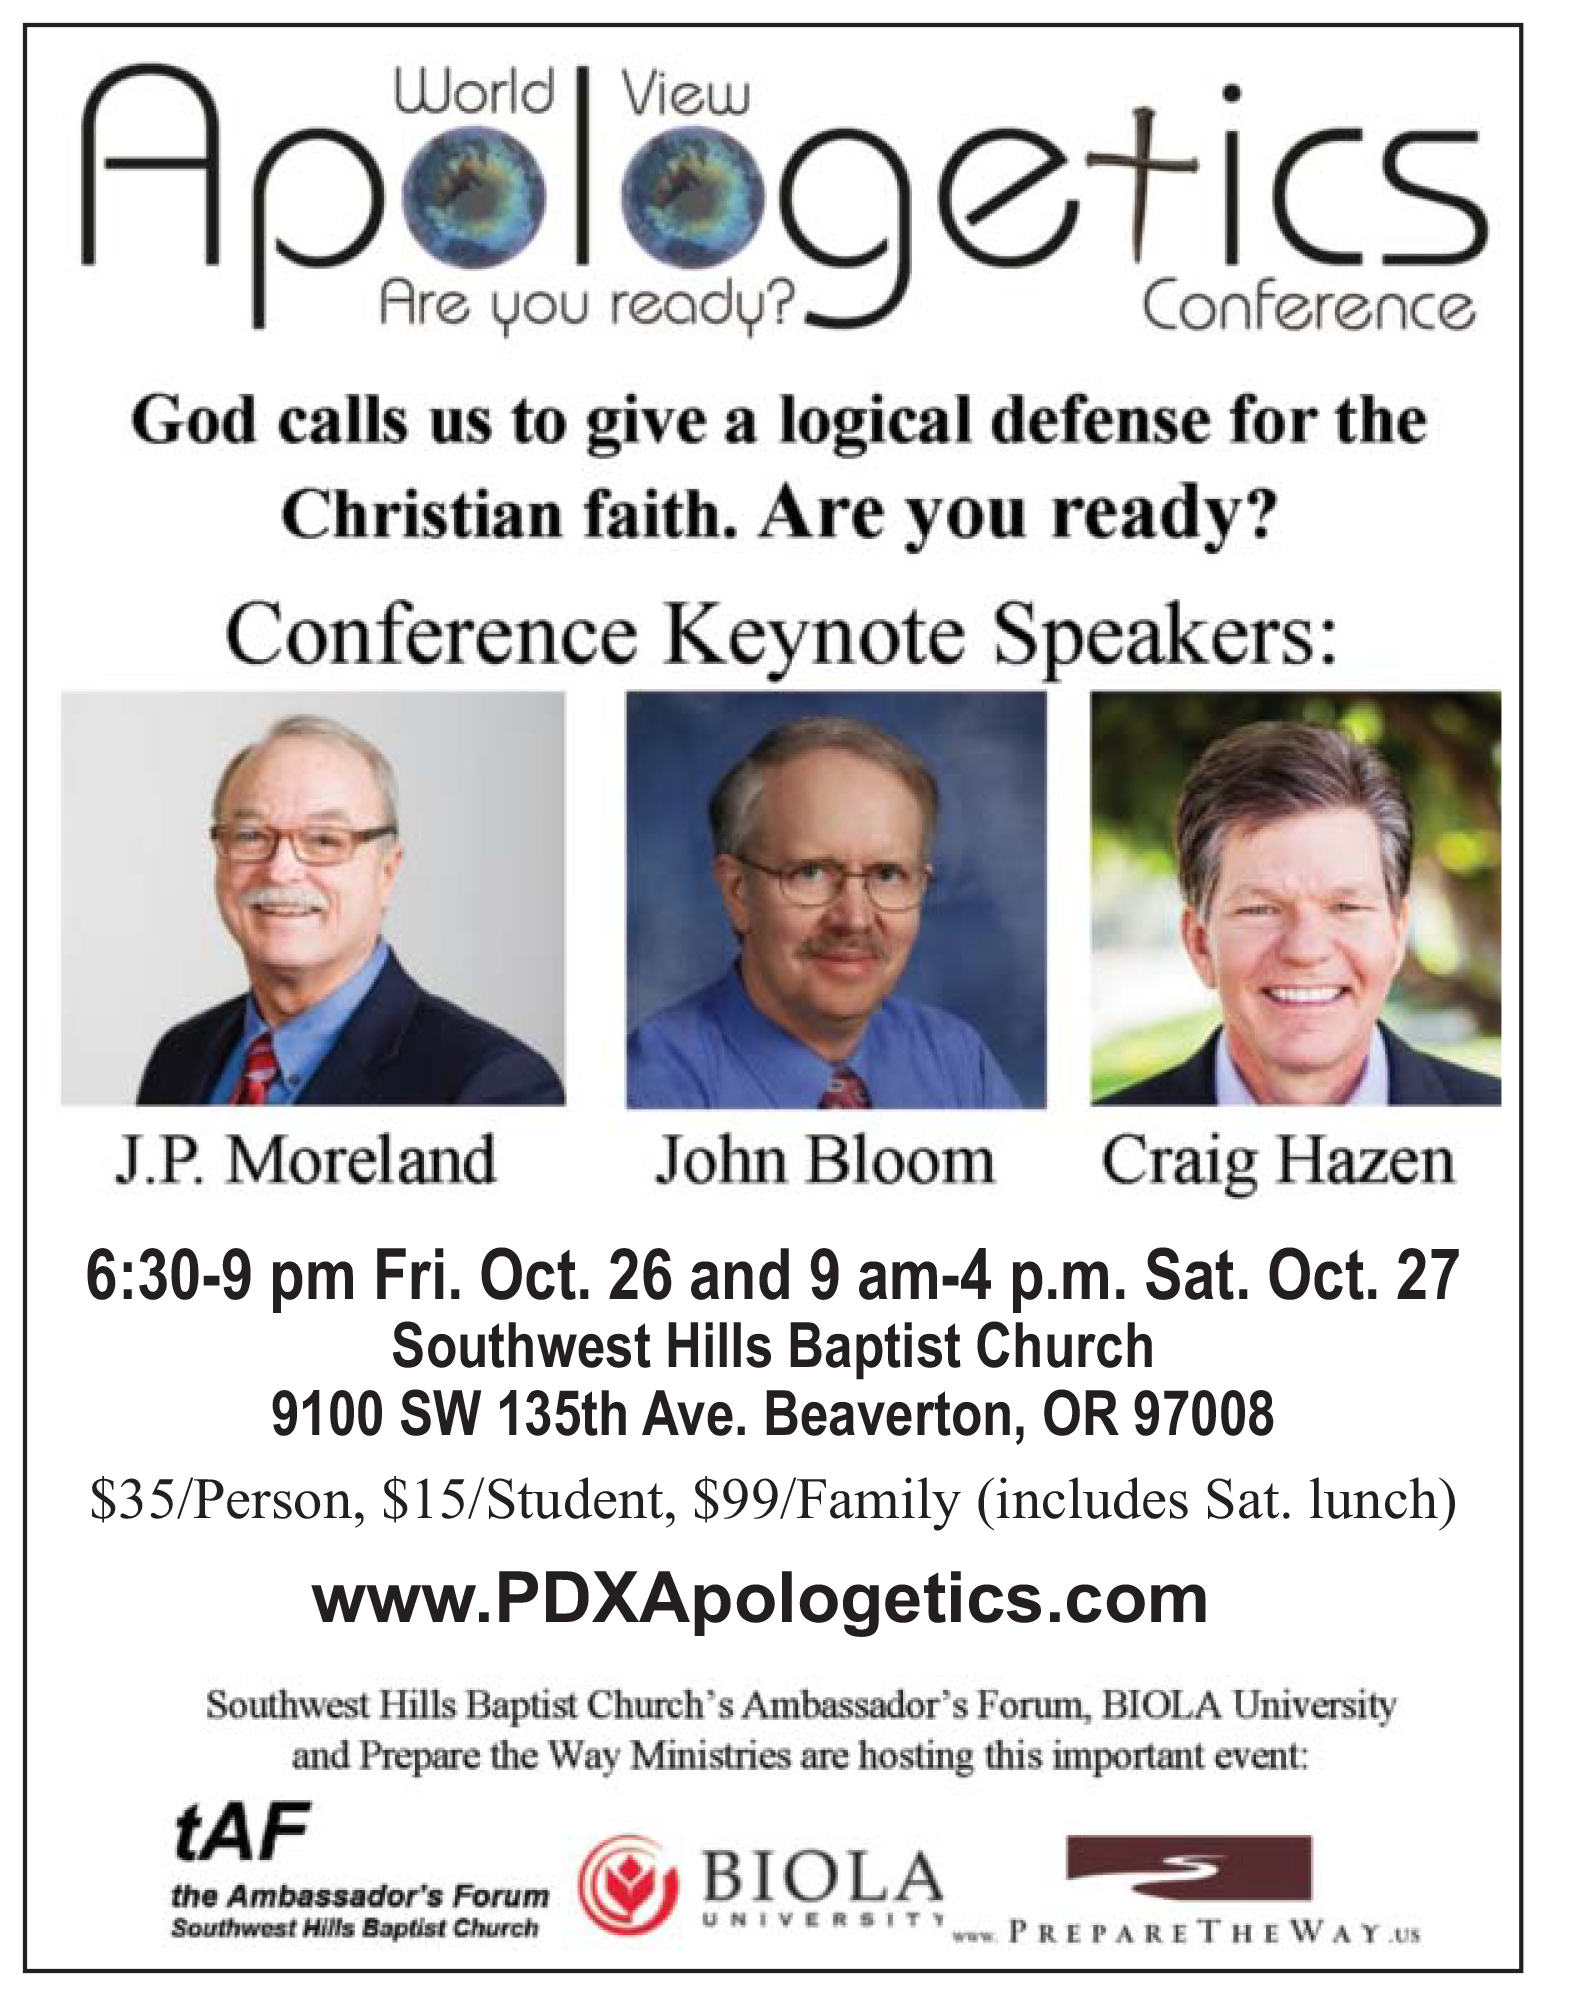 Join us October 26th and 27th as Apologetics experts John Bloom, Craig Hazen, and J.P. Moreland dive into a wide variety of topics on defending our faith. Visit  PDXApologetics.com  to register and find more information.